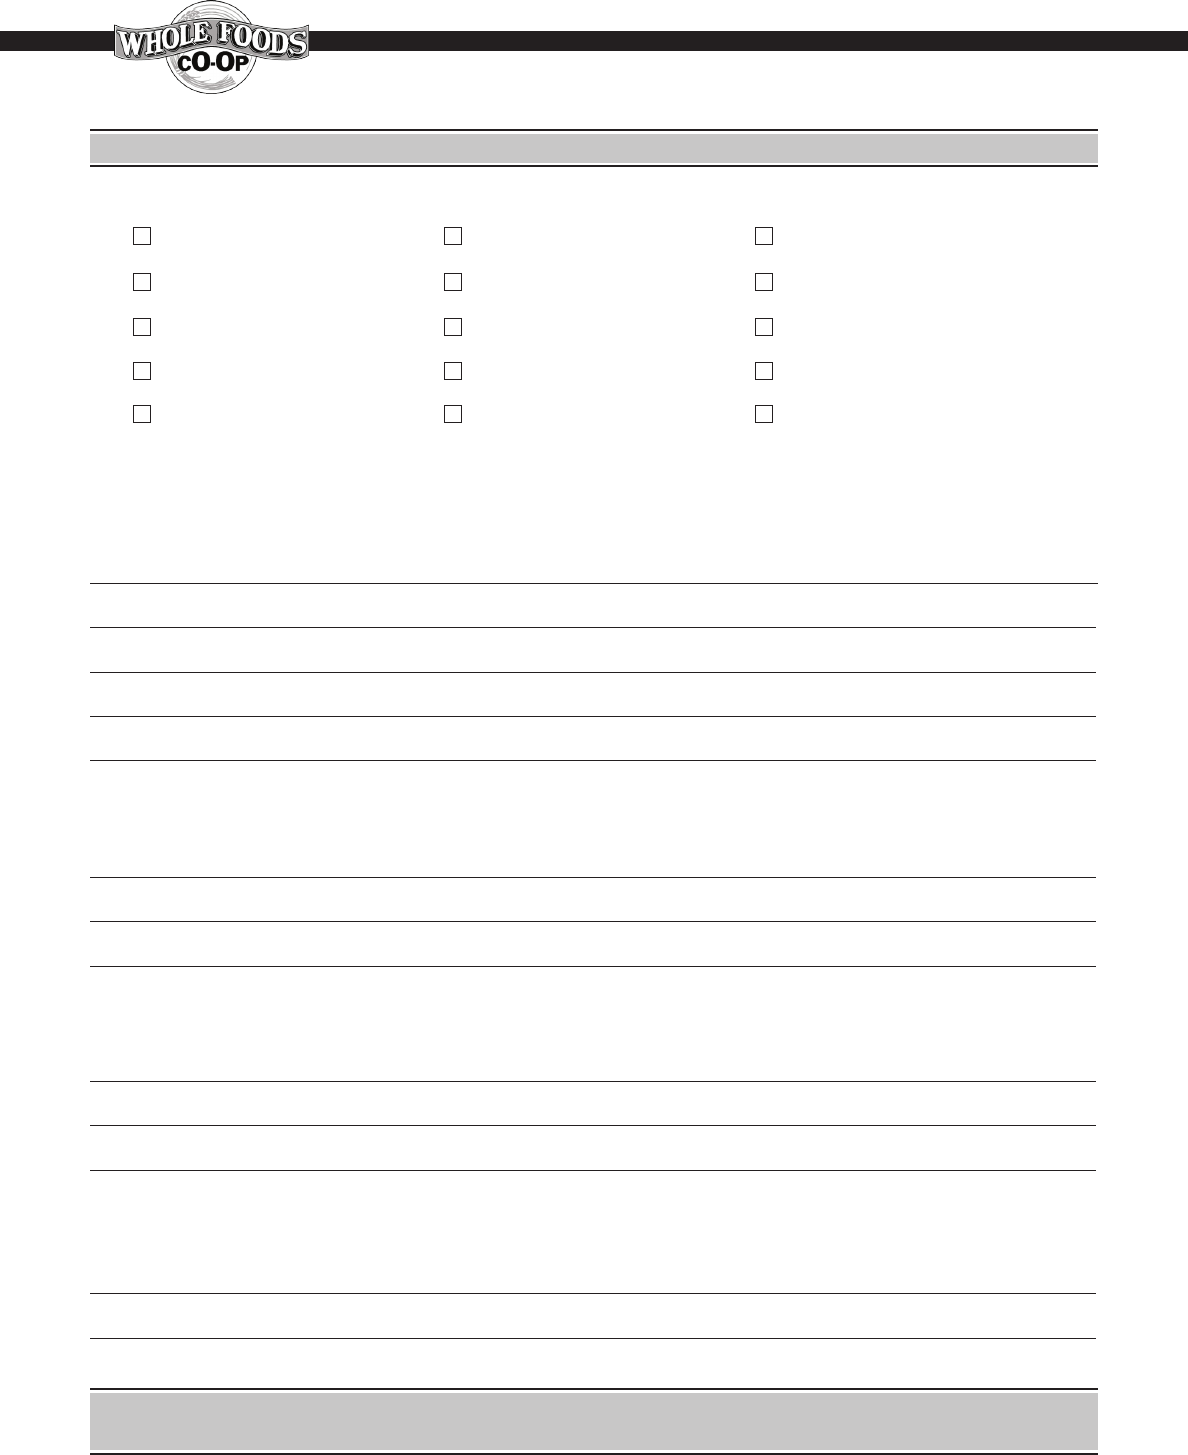 Free Printable Whole Foods Job Application Form Page 5